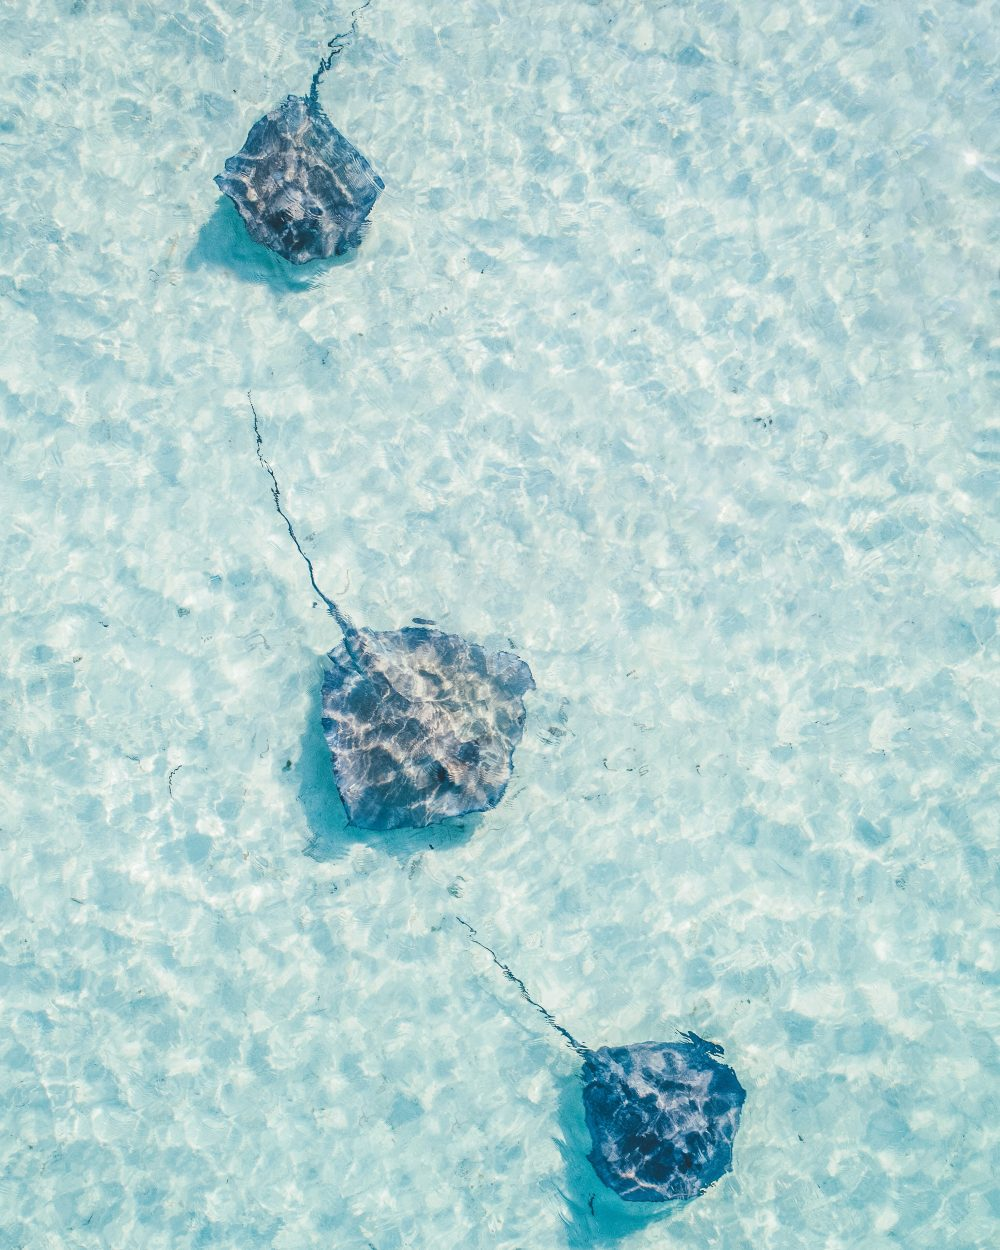 Pierce Gainey Drone Photo of Stingrays